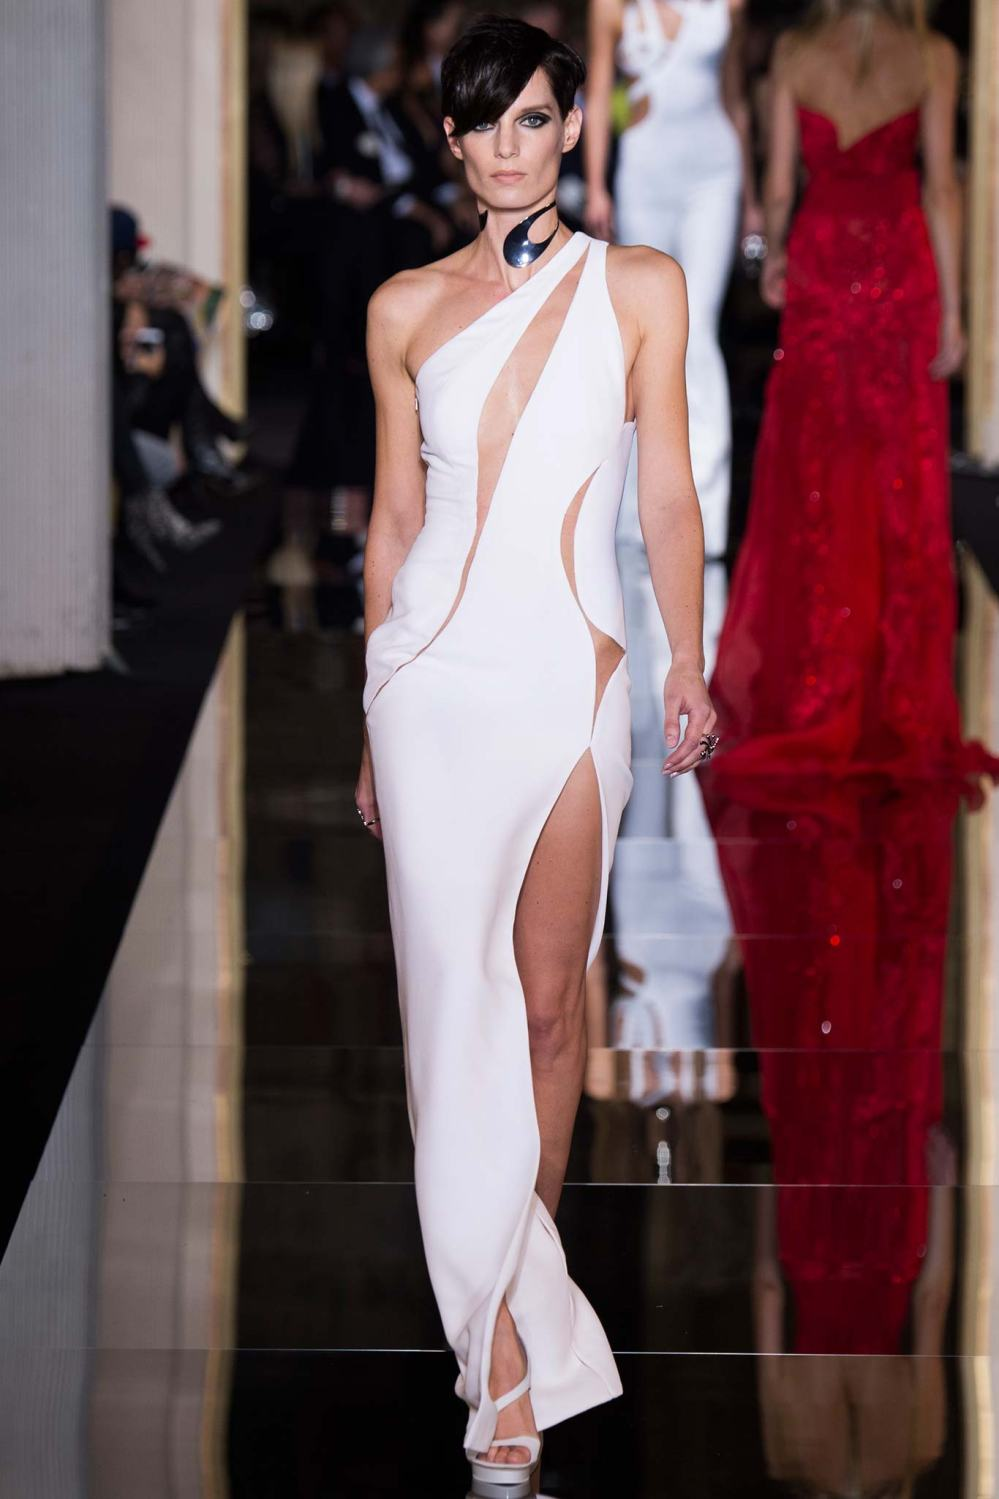 Atelier Versace, Spring/Summer 2015 Look 43 Model : Iris Strubegger Photo: Kim Weston Arnold/Indigitalimages.com